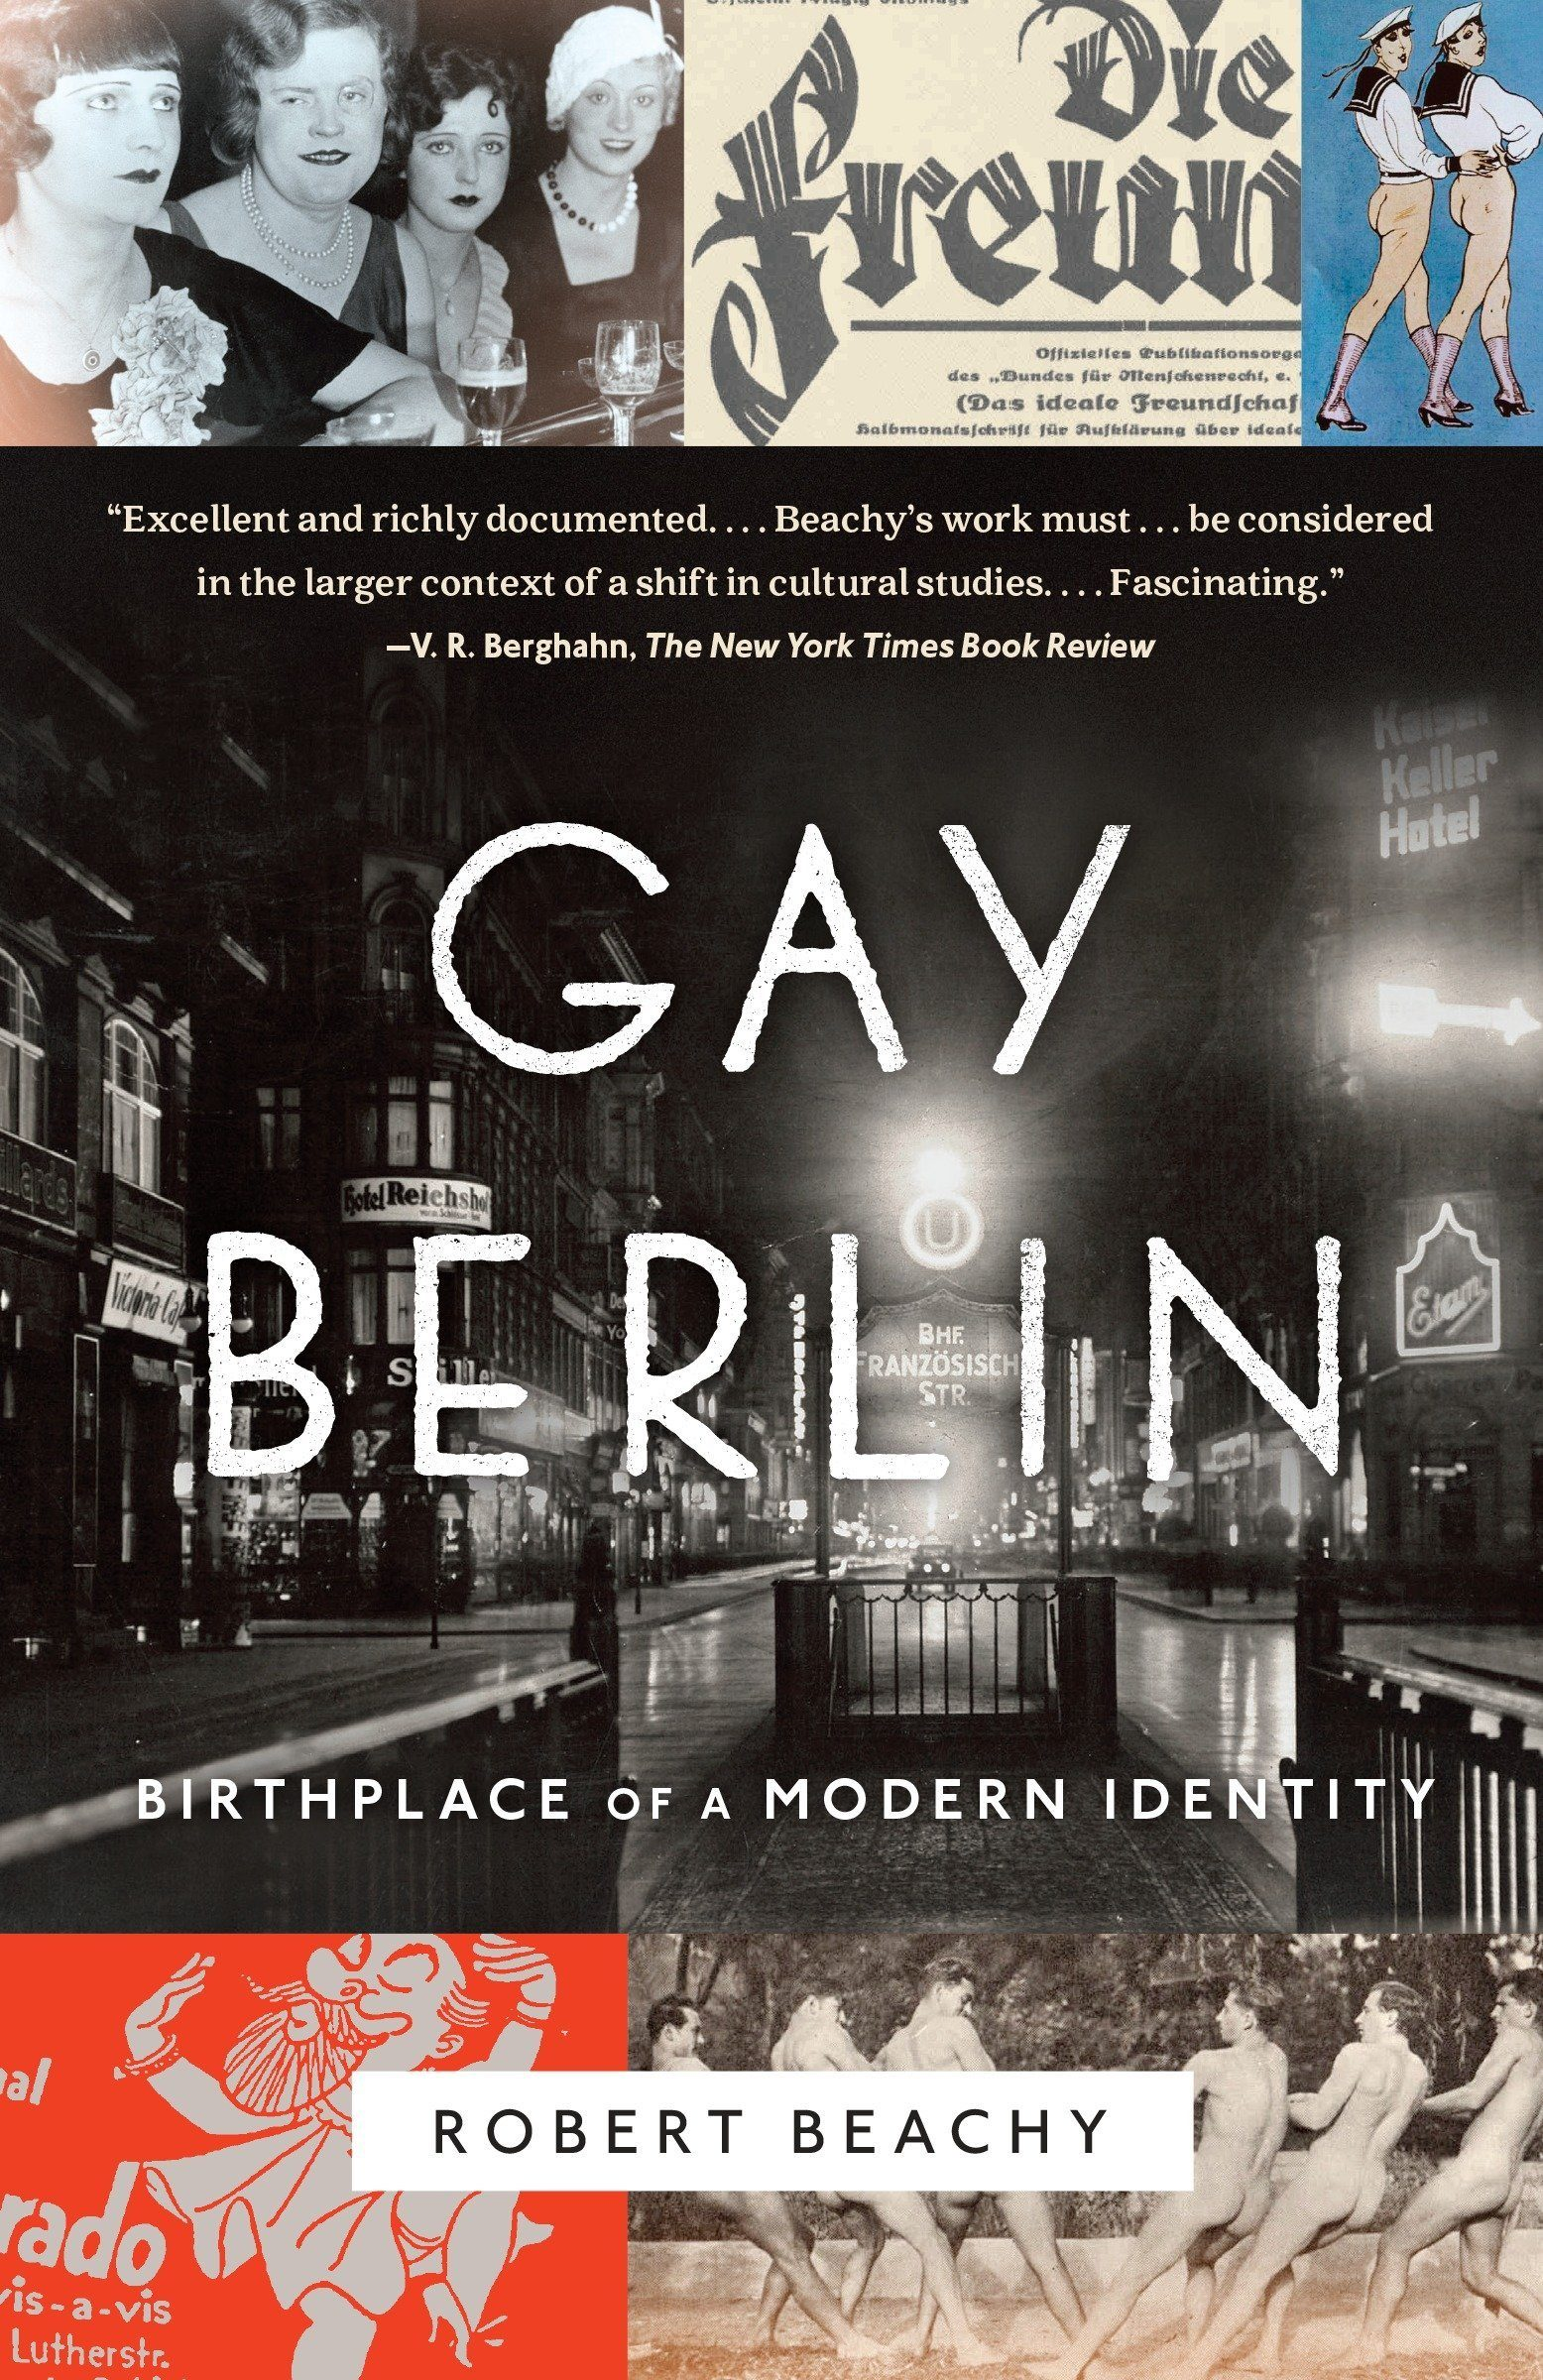 Cover of Gay Berlin: Birthplace of a Modern Identity, by Robert Beachy